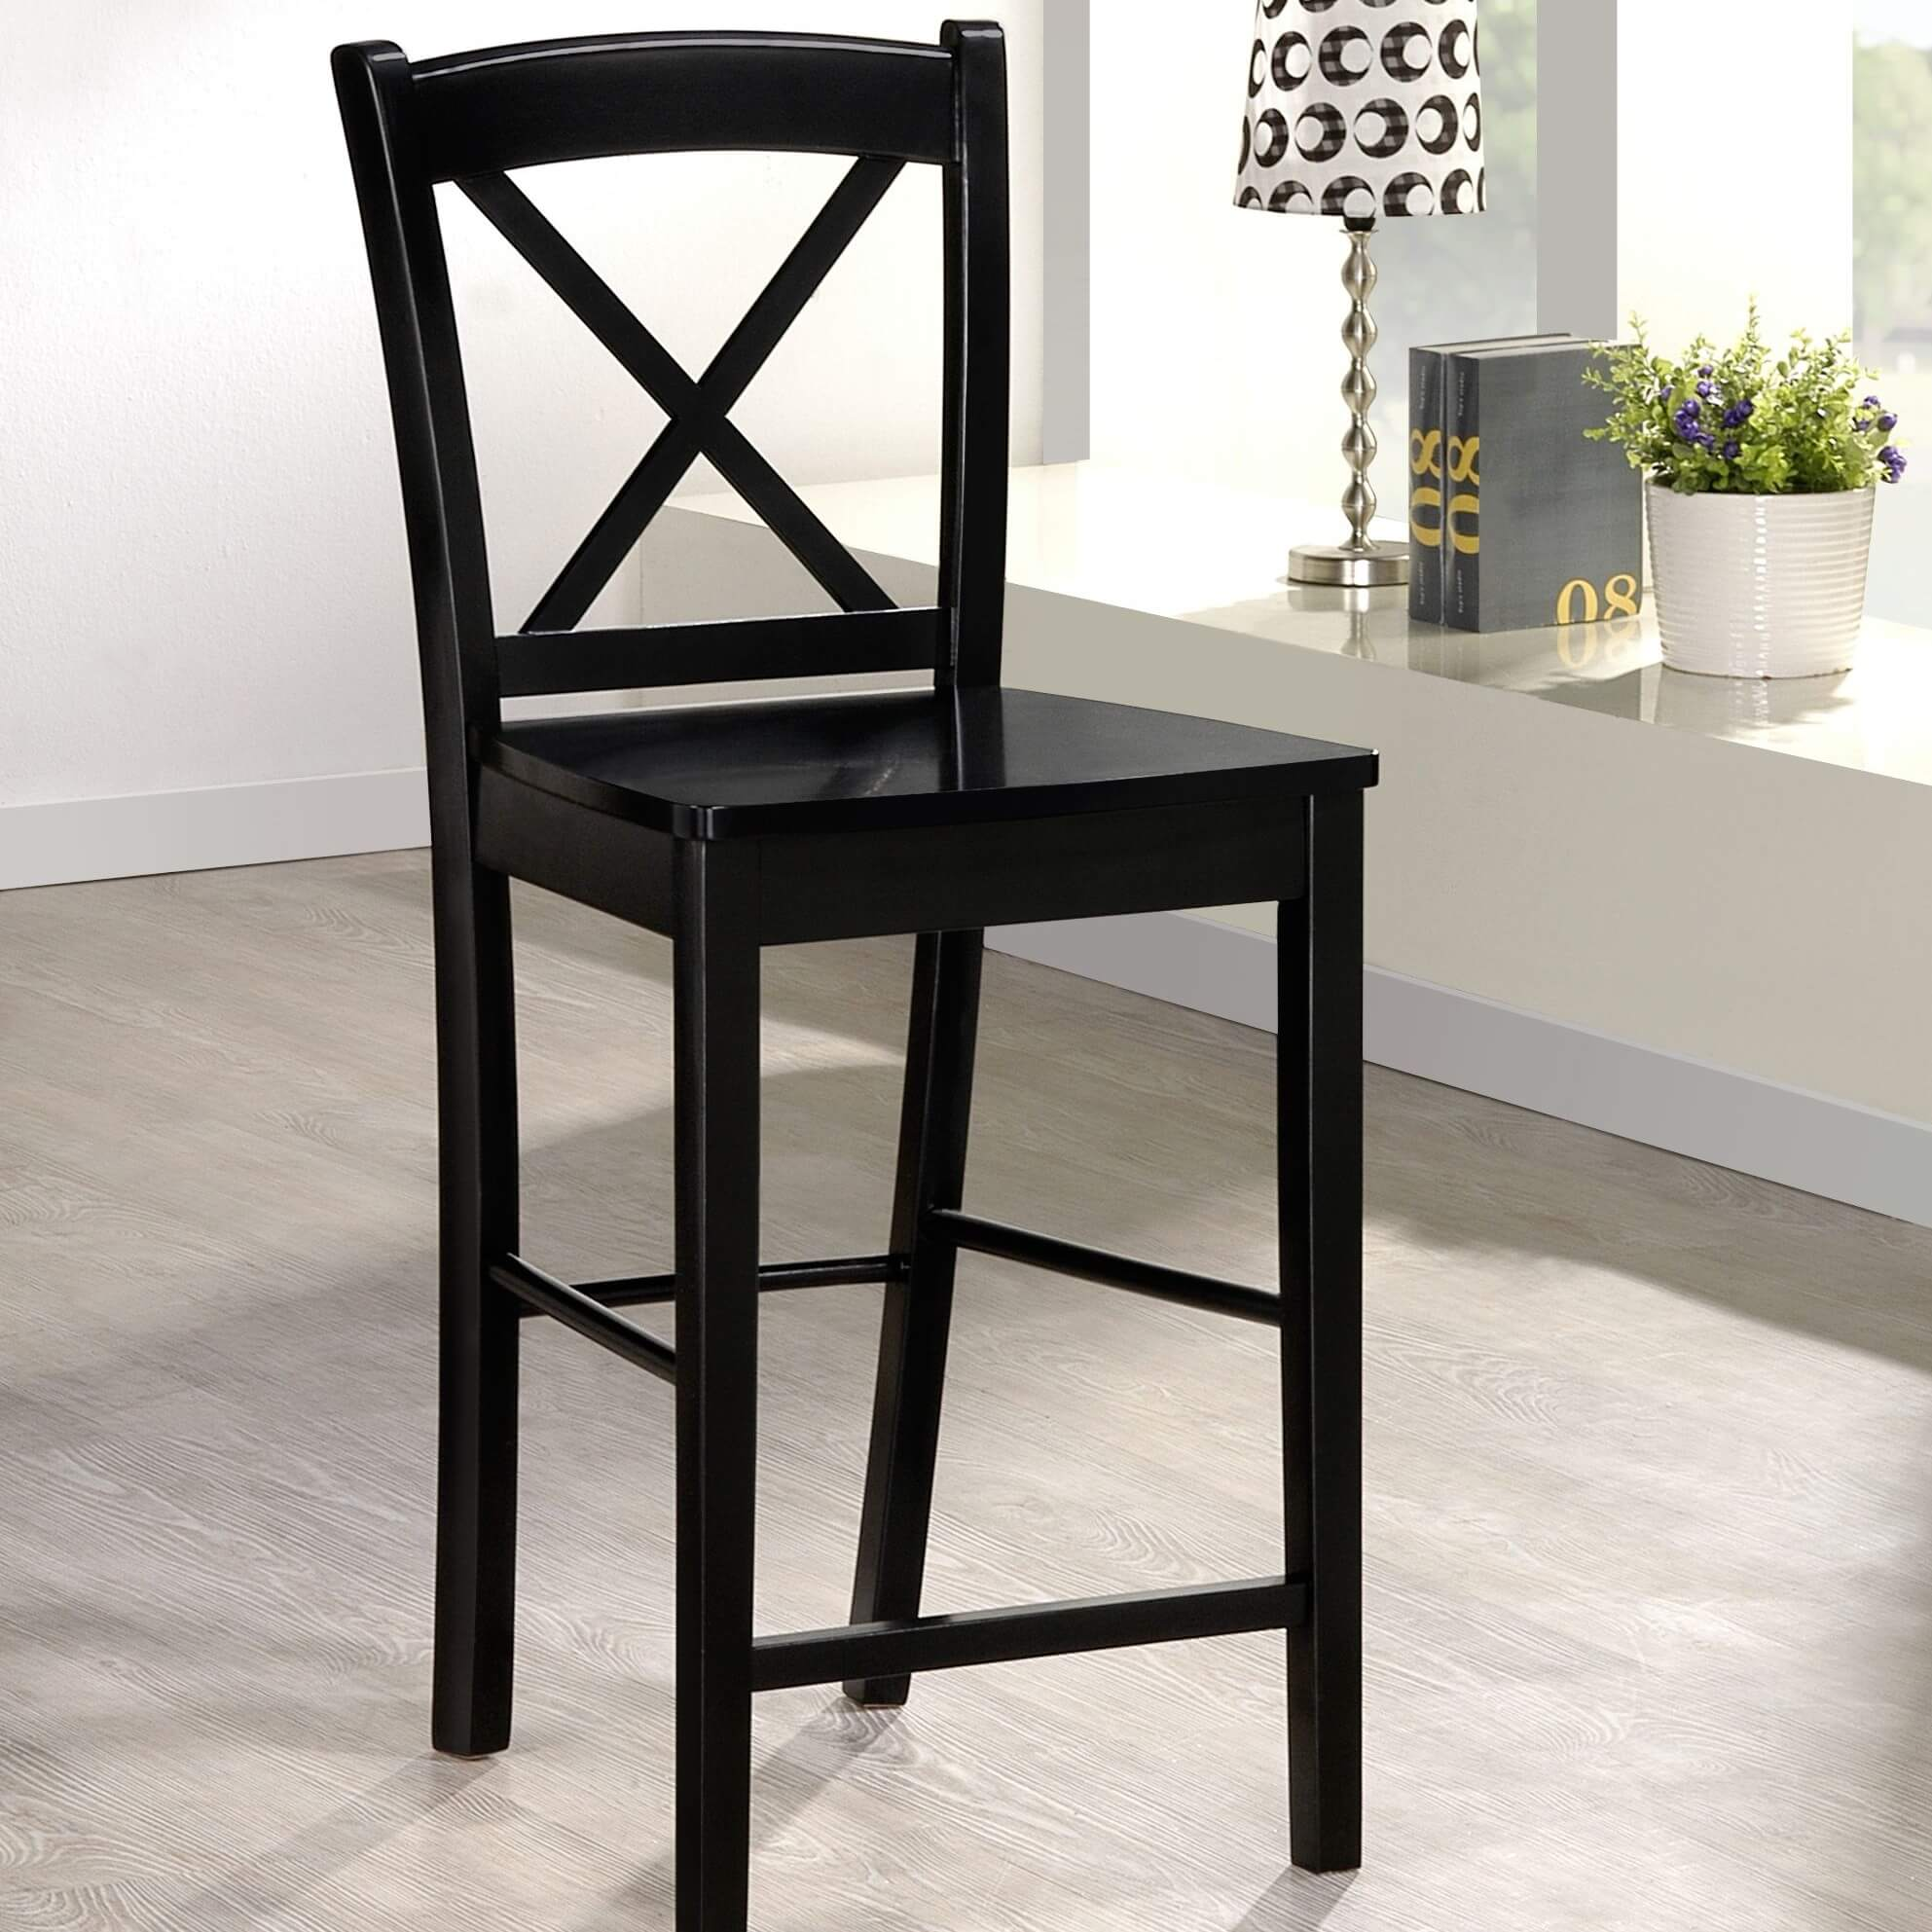 4-legged stool with a cross back design and cushioned upholstered seat.